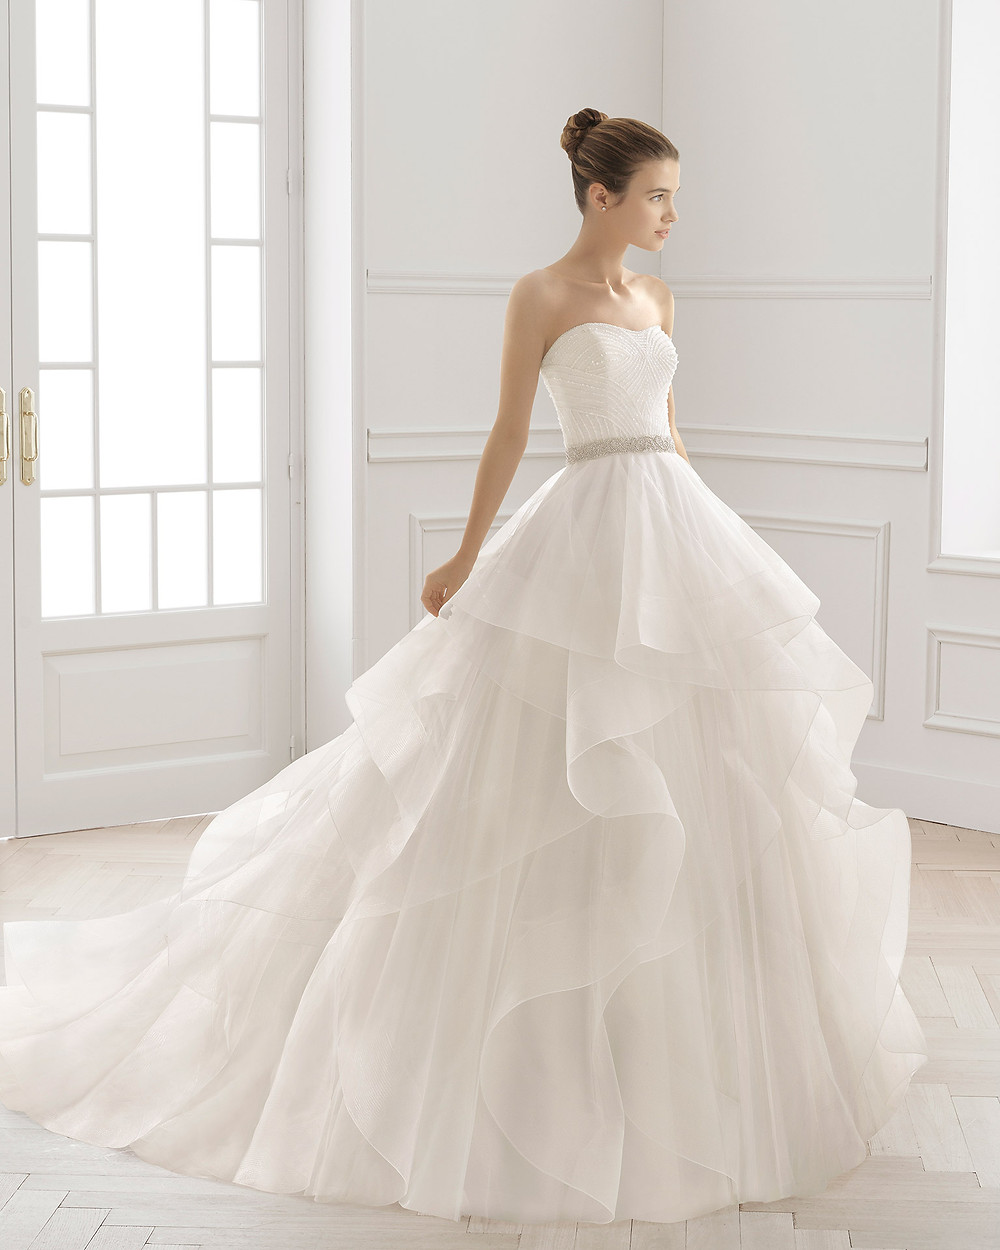 An Aire Barcelona 2020 strapless ball gown wedding dress with a tulle layered ruffle skirt